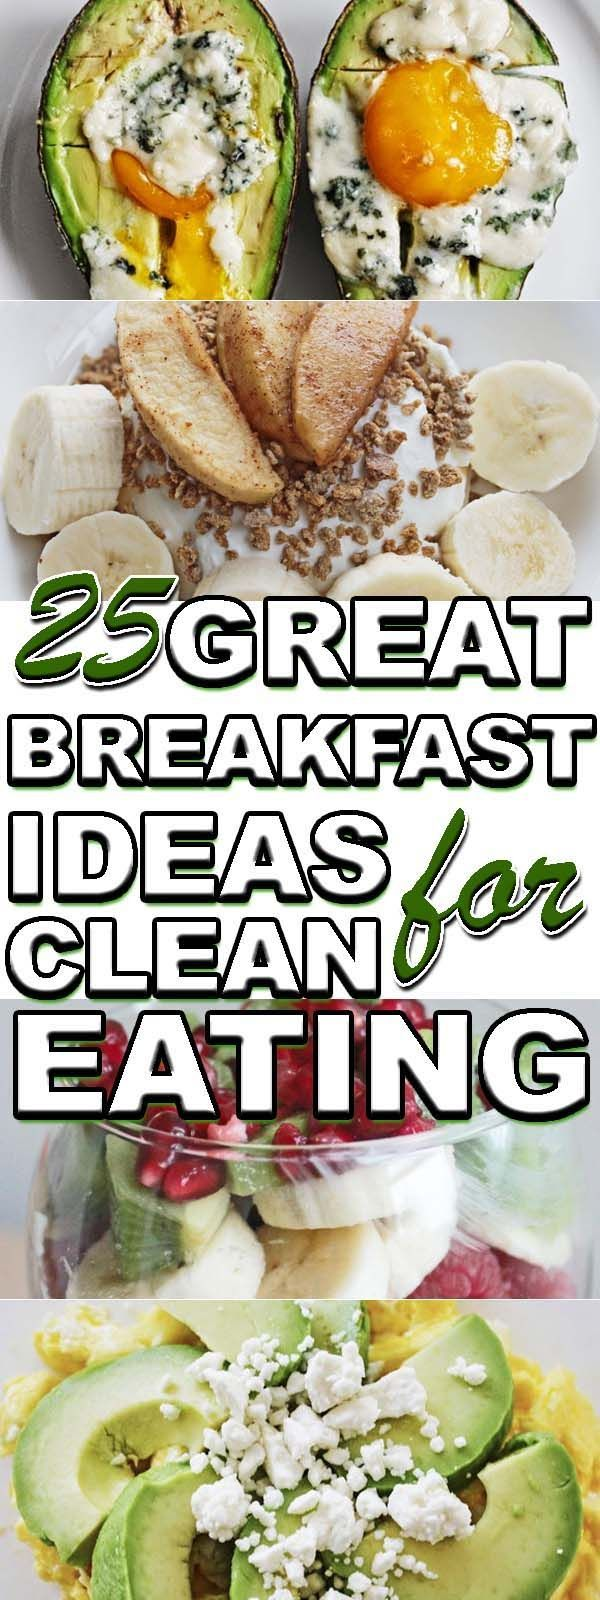 25 Great Breakfast Ideas for Clean Eating | #cleaneating #eatclean #breakfast #healthy #healthybreak...